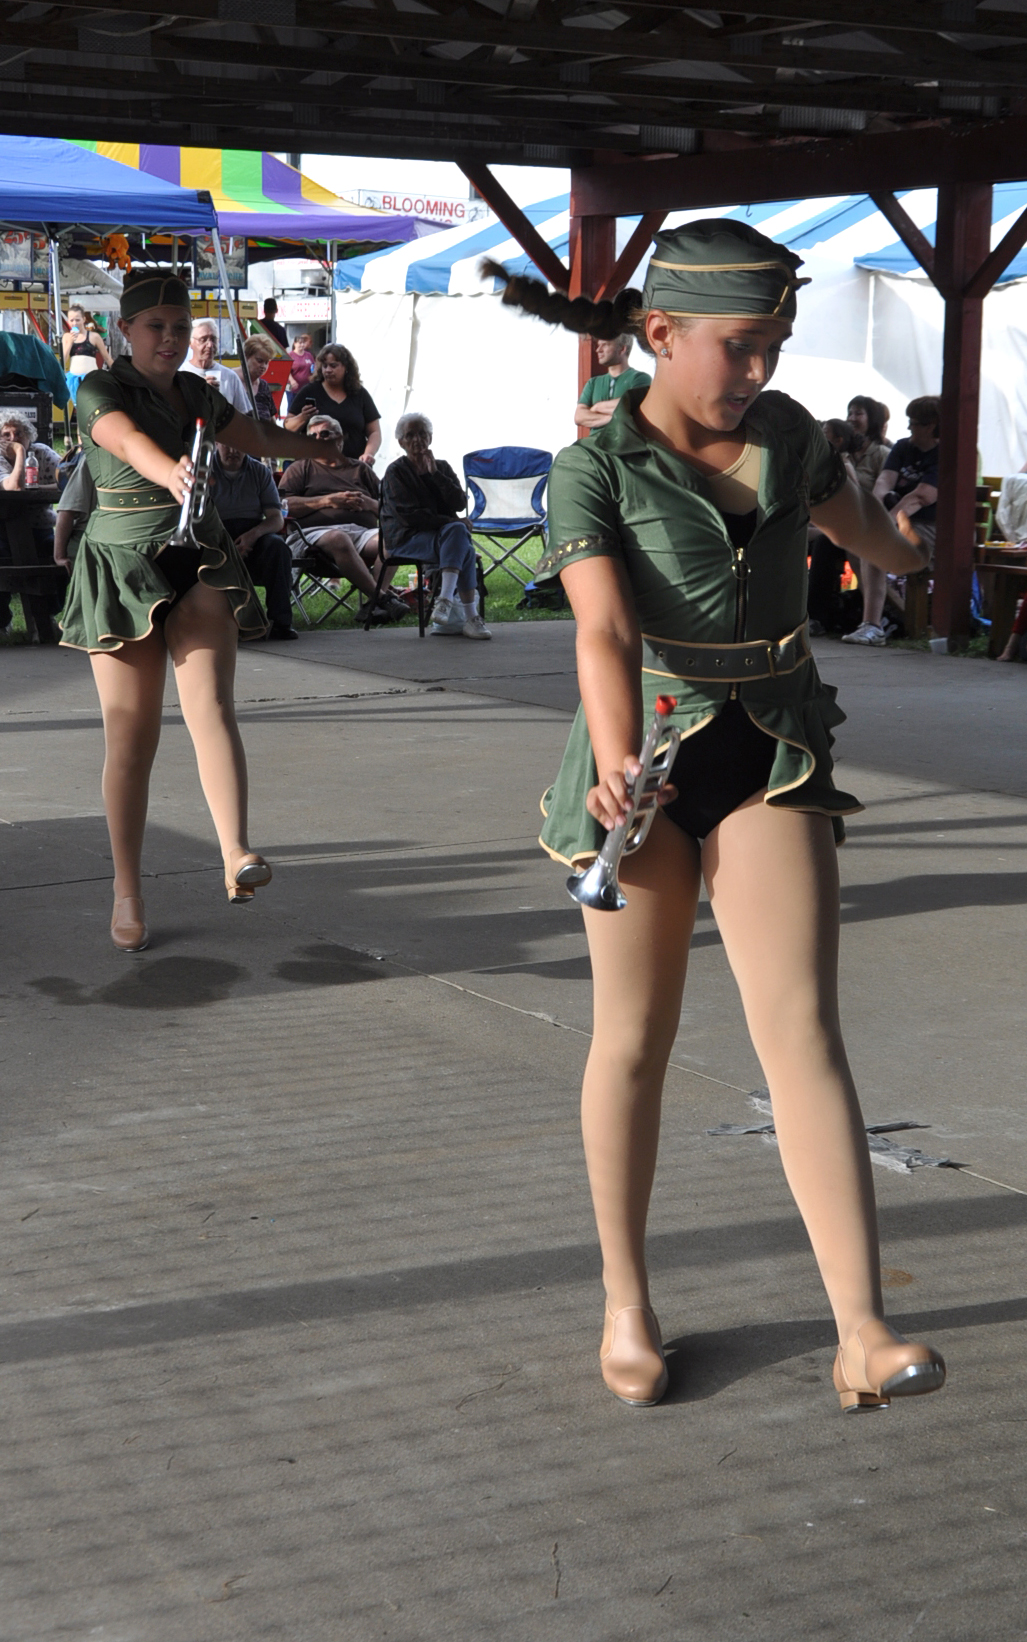 boogie woogie bugle girls from Company C_4988.jpg